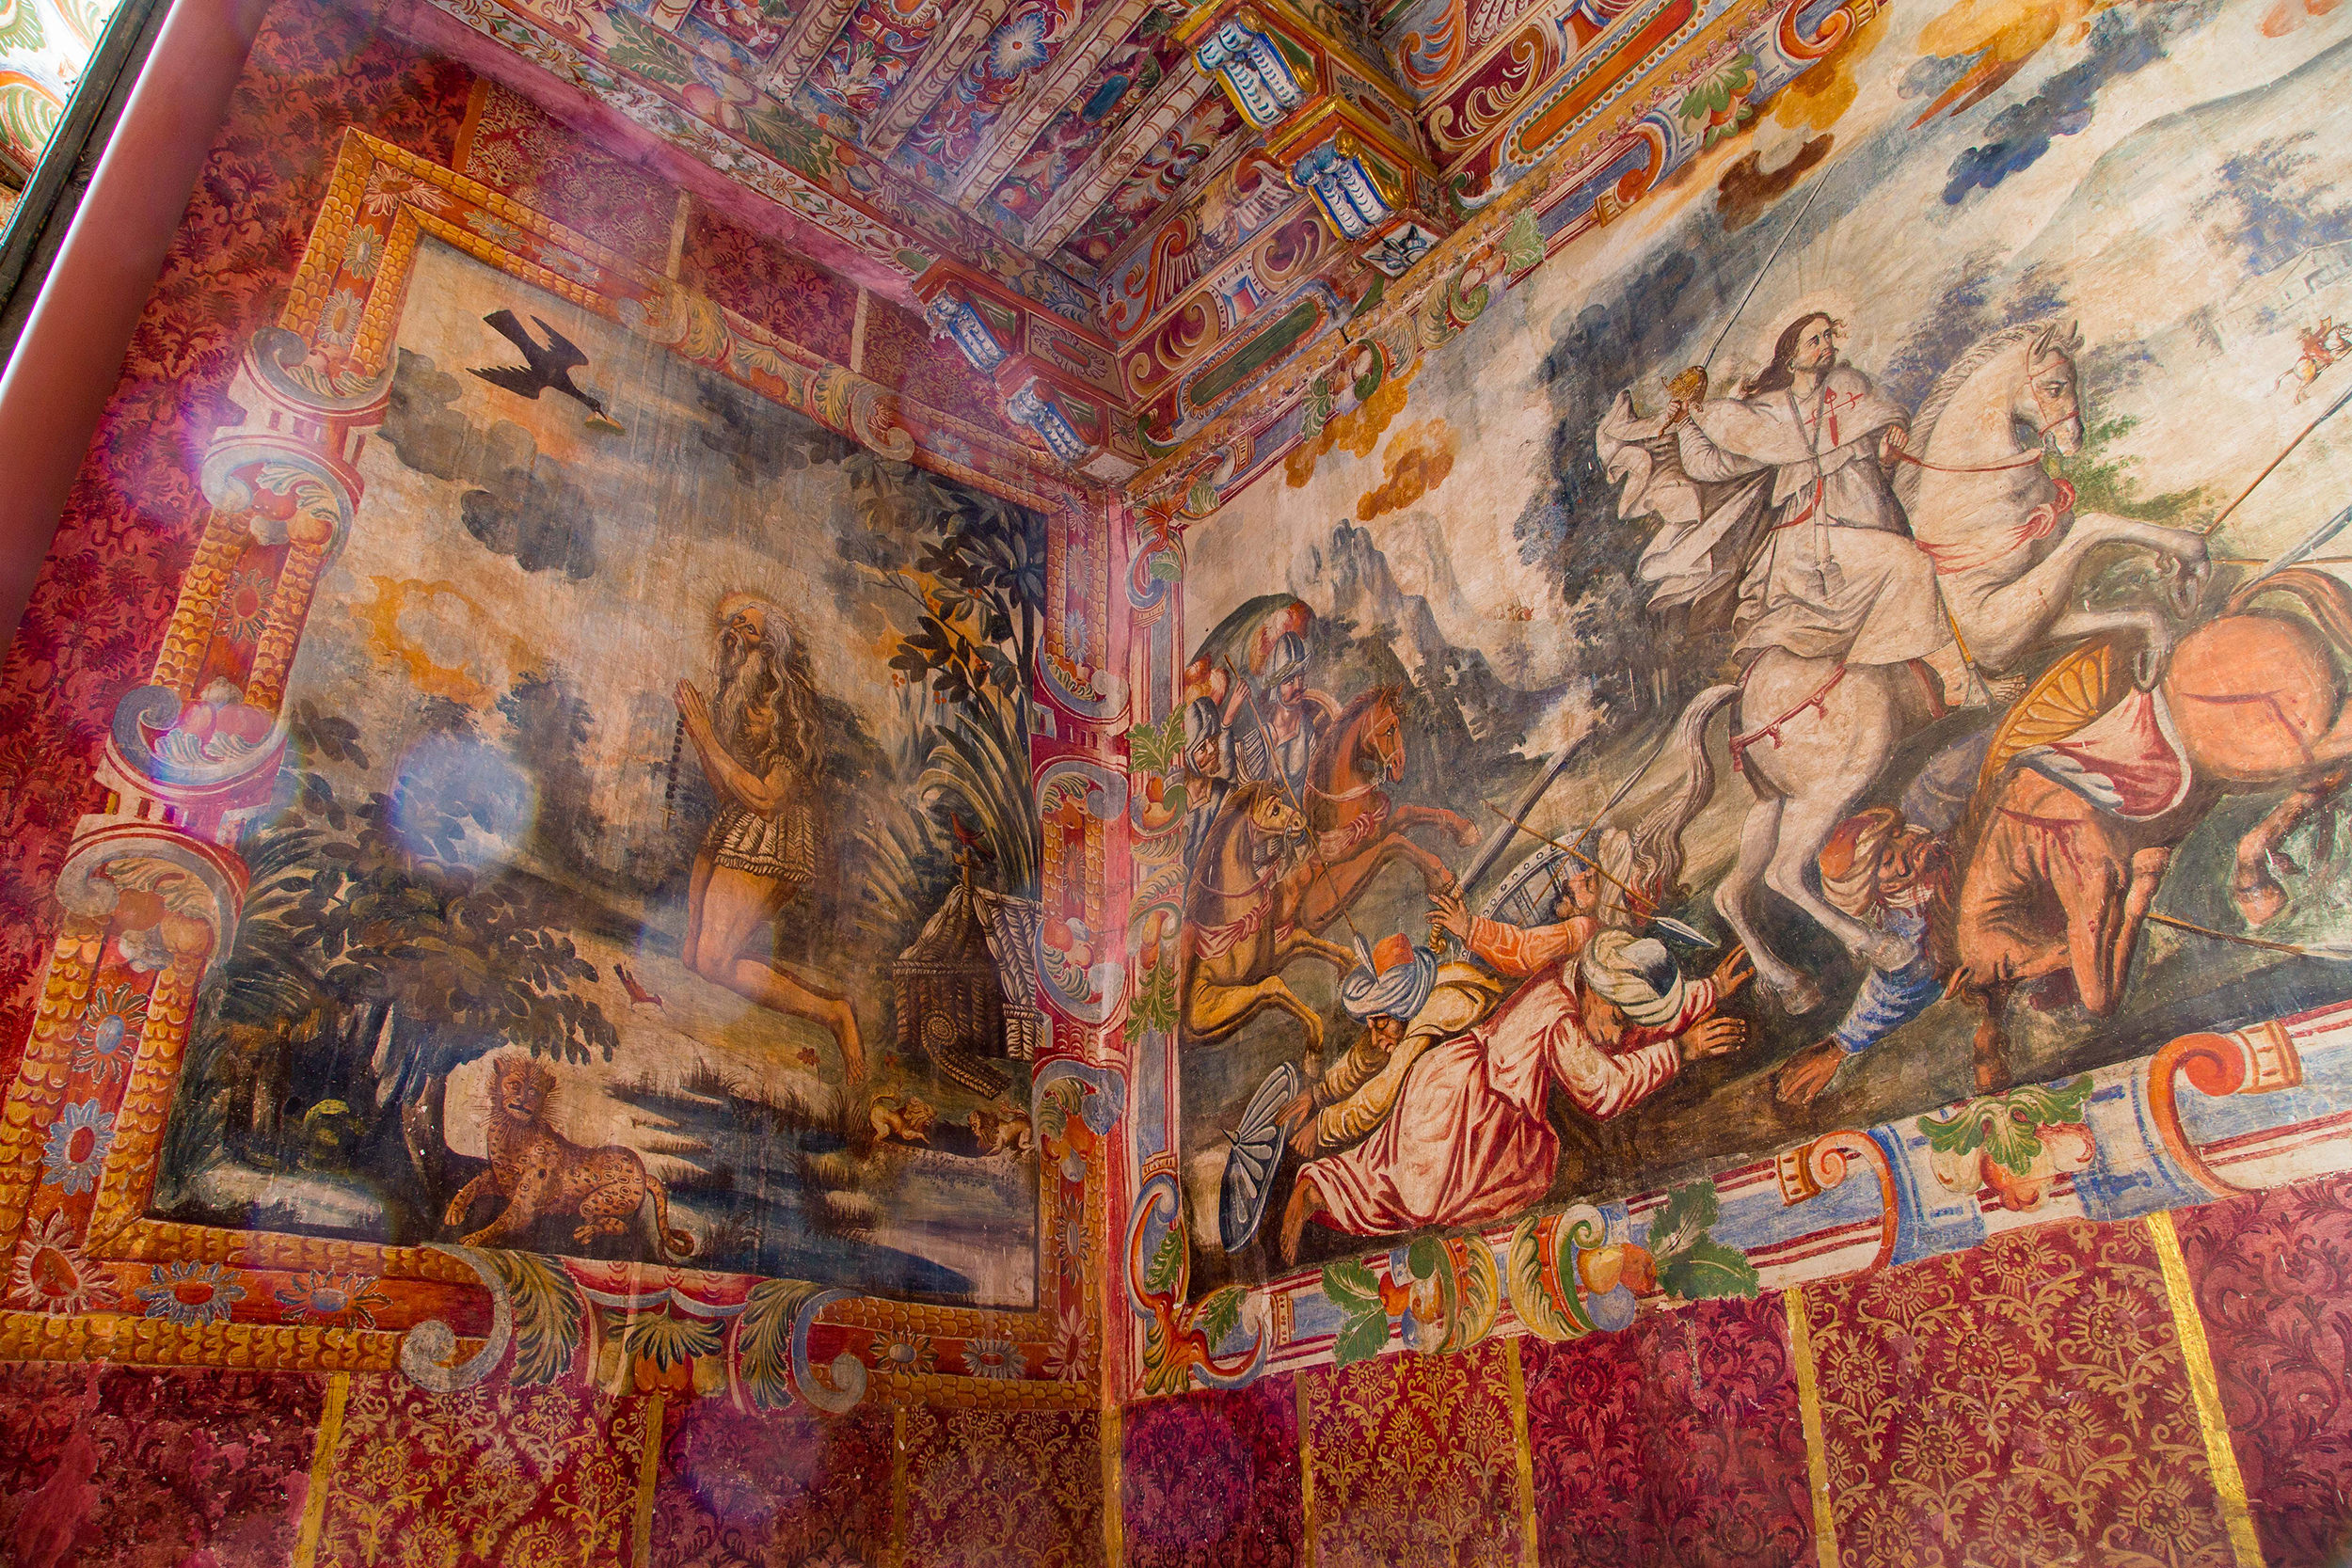 Fig. 43 Mural of St. Paul the Hermit and St. James at the Battle of Clavijo set against textile panels, 17th century. Church of Checacupe, Canchis Province. Photo by Raúl Montero Quispe.